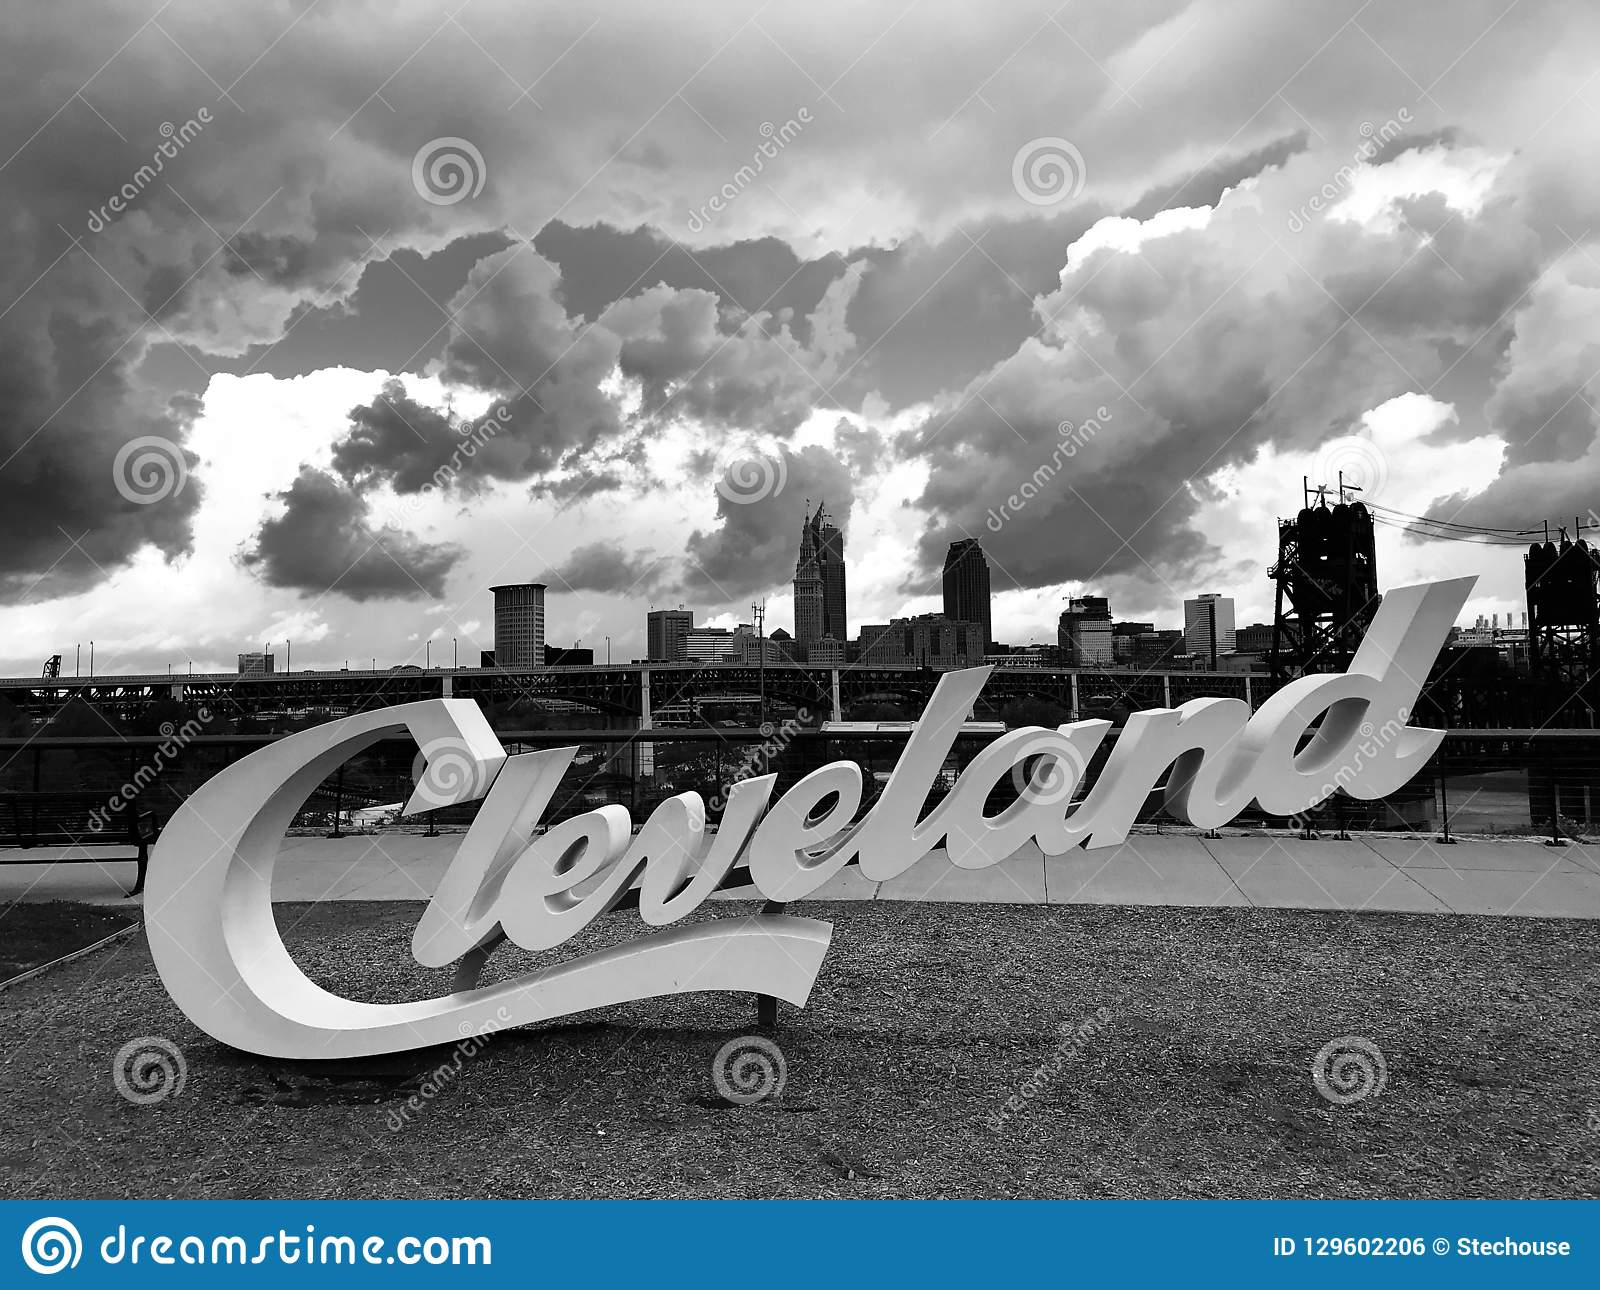 The famed CLEVELAND sign over the Flats looking onto the skyline - CLEVELAND - OHIO - USA